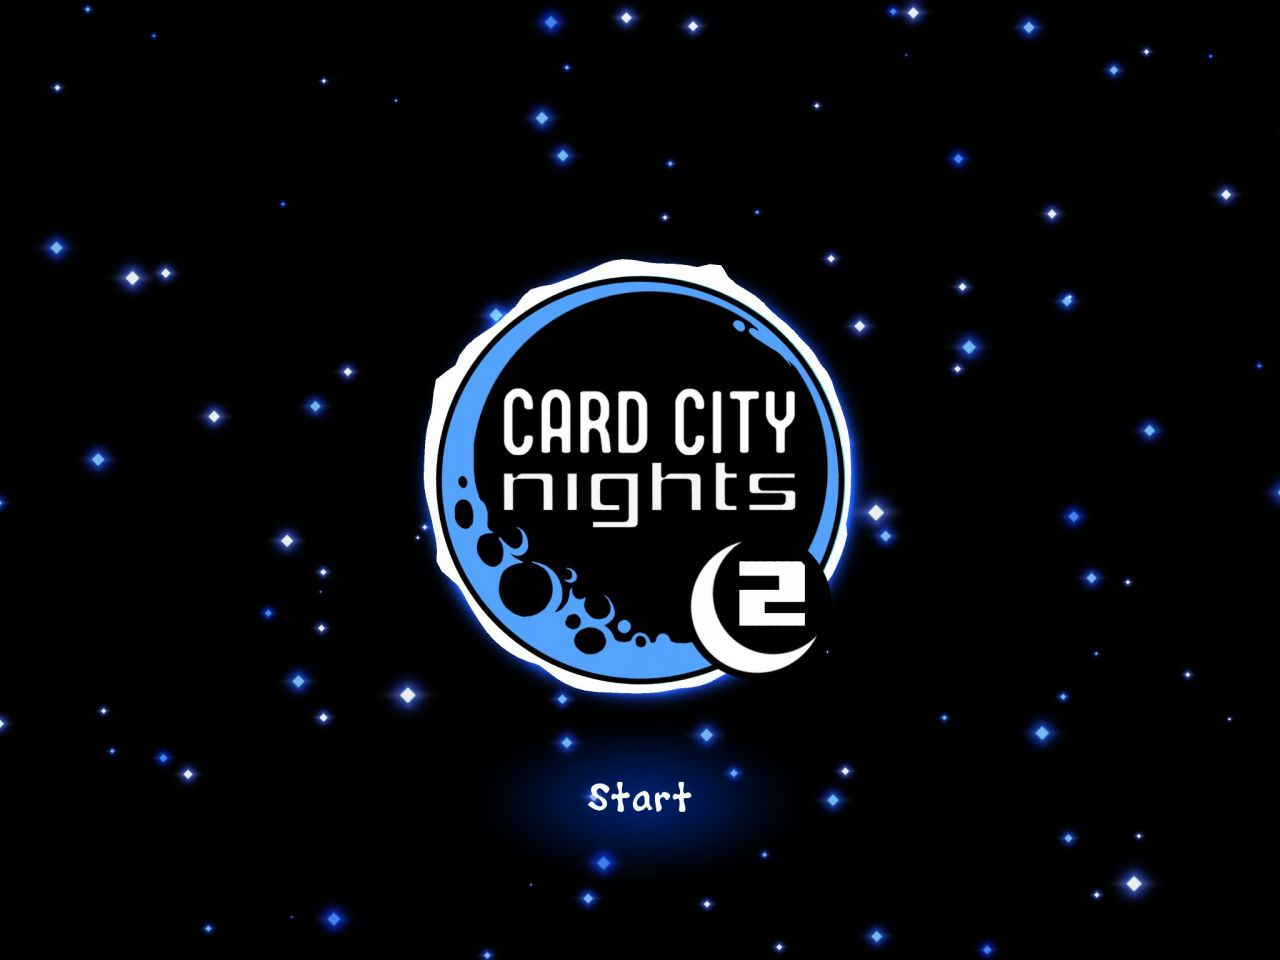 Card City Nights 2 (copie d'écran 1 sur iPhone / iPad)